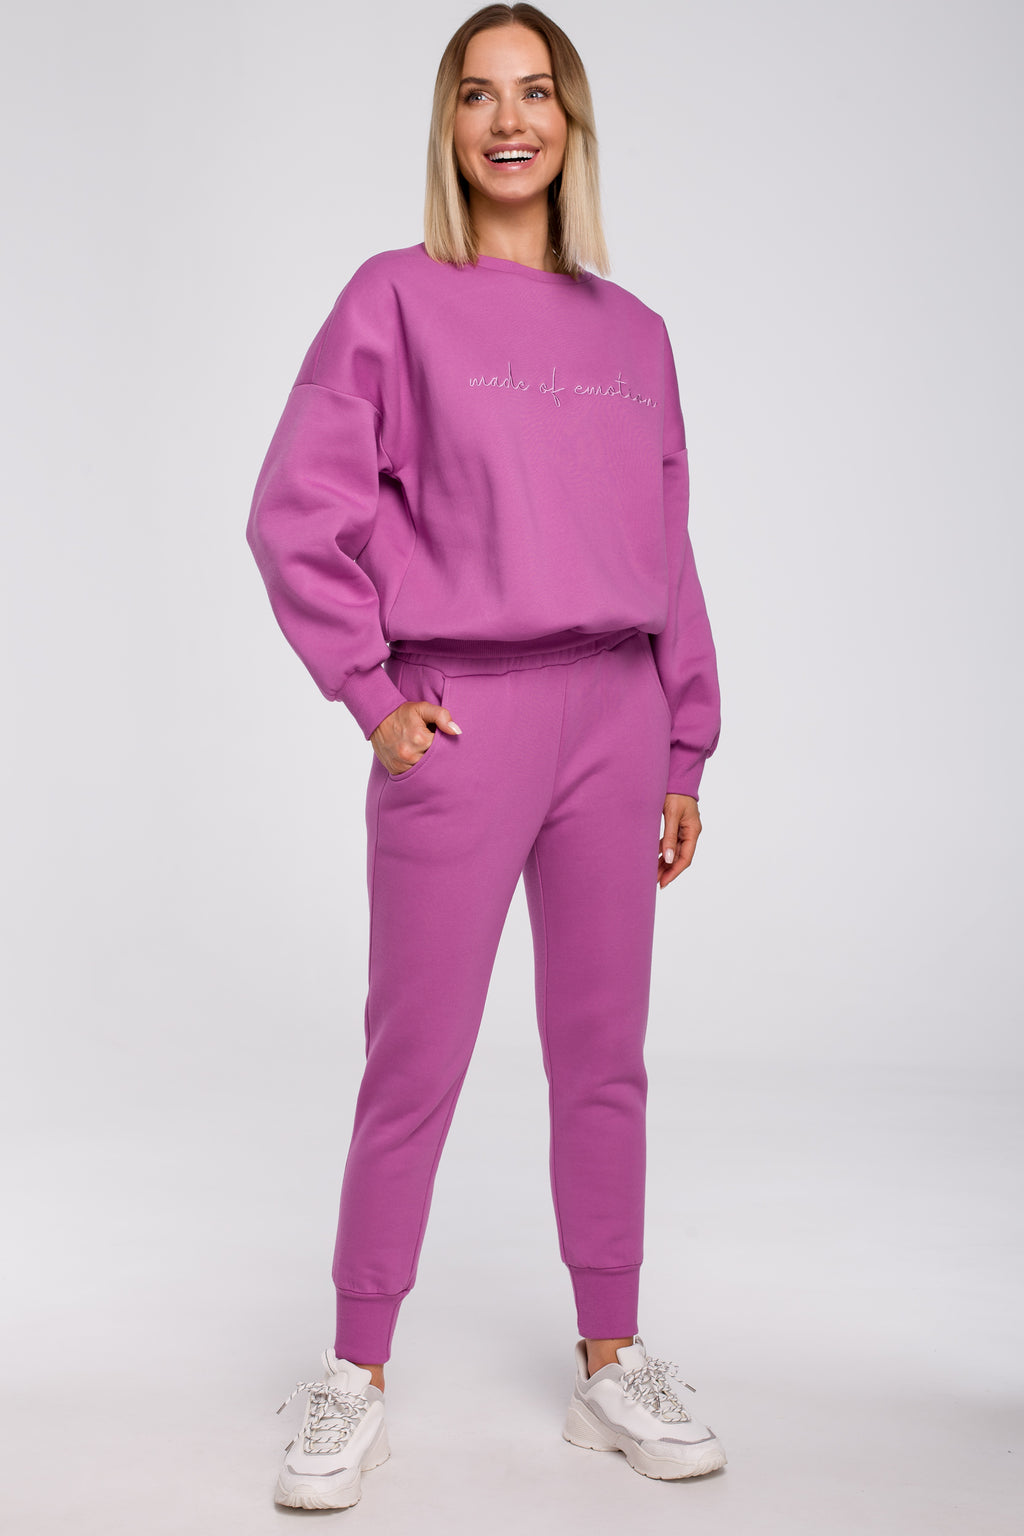 Lavender Joggers With Elastic Waist - So Chic Boutique